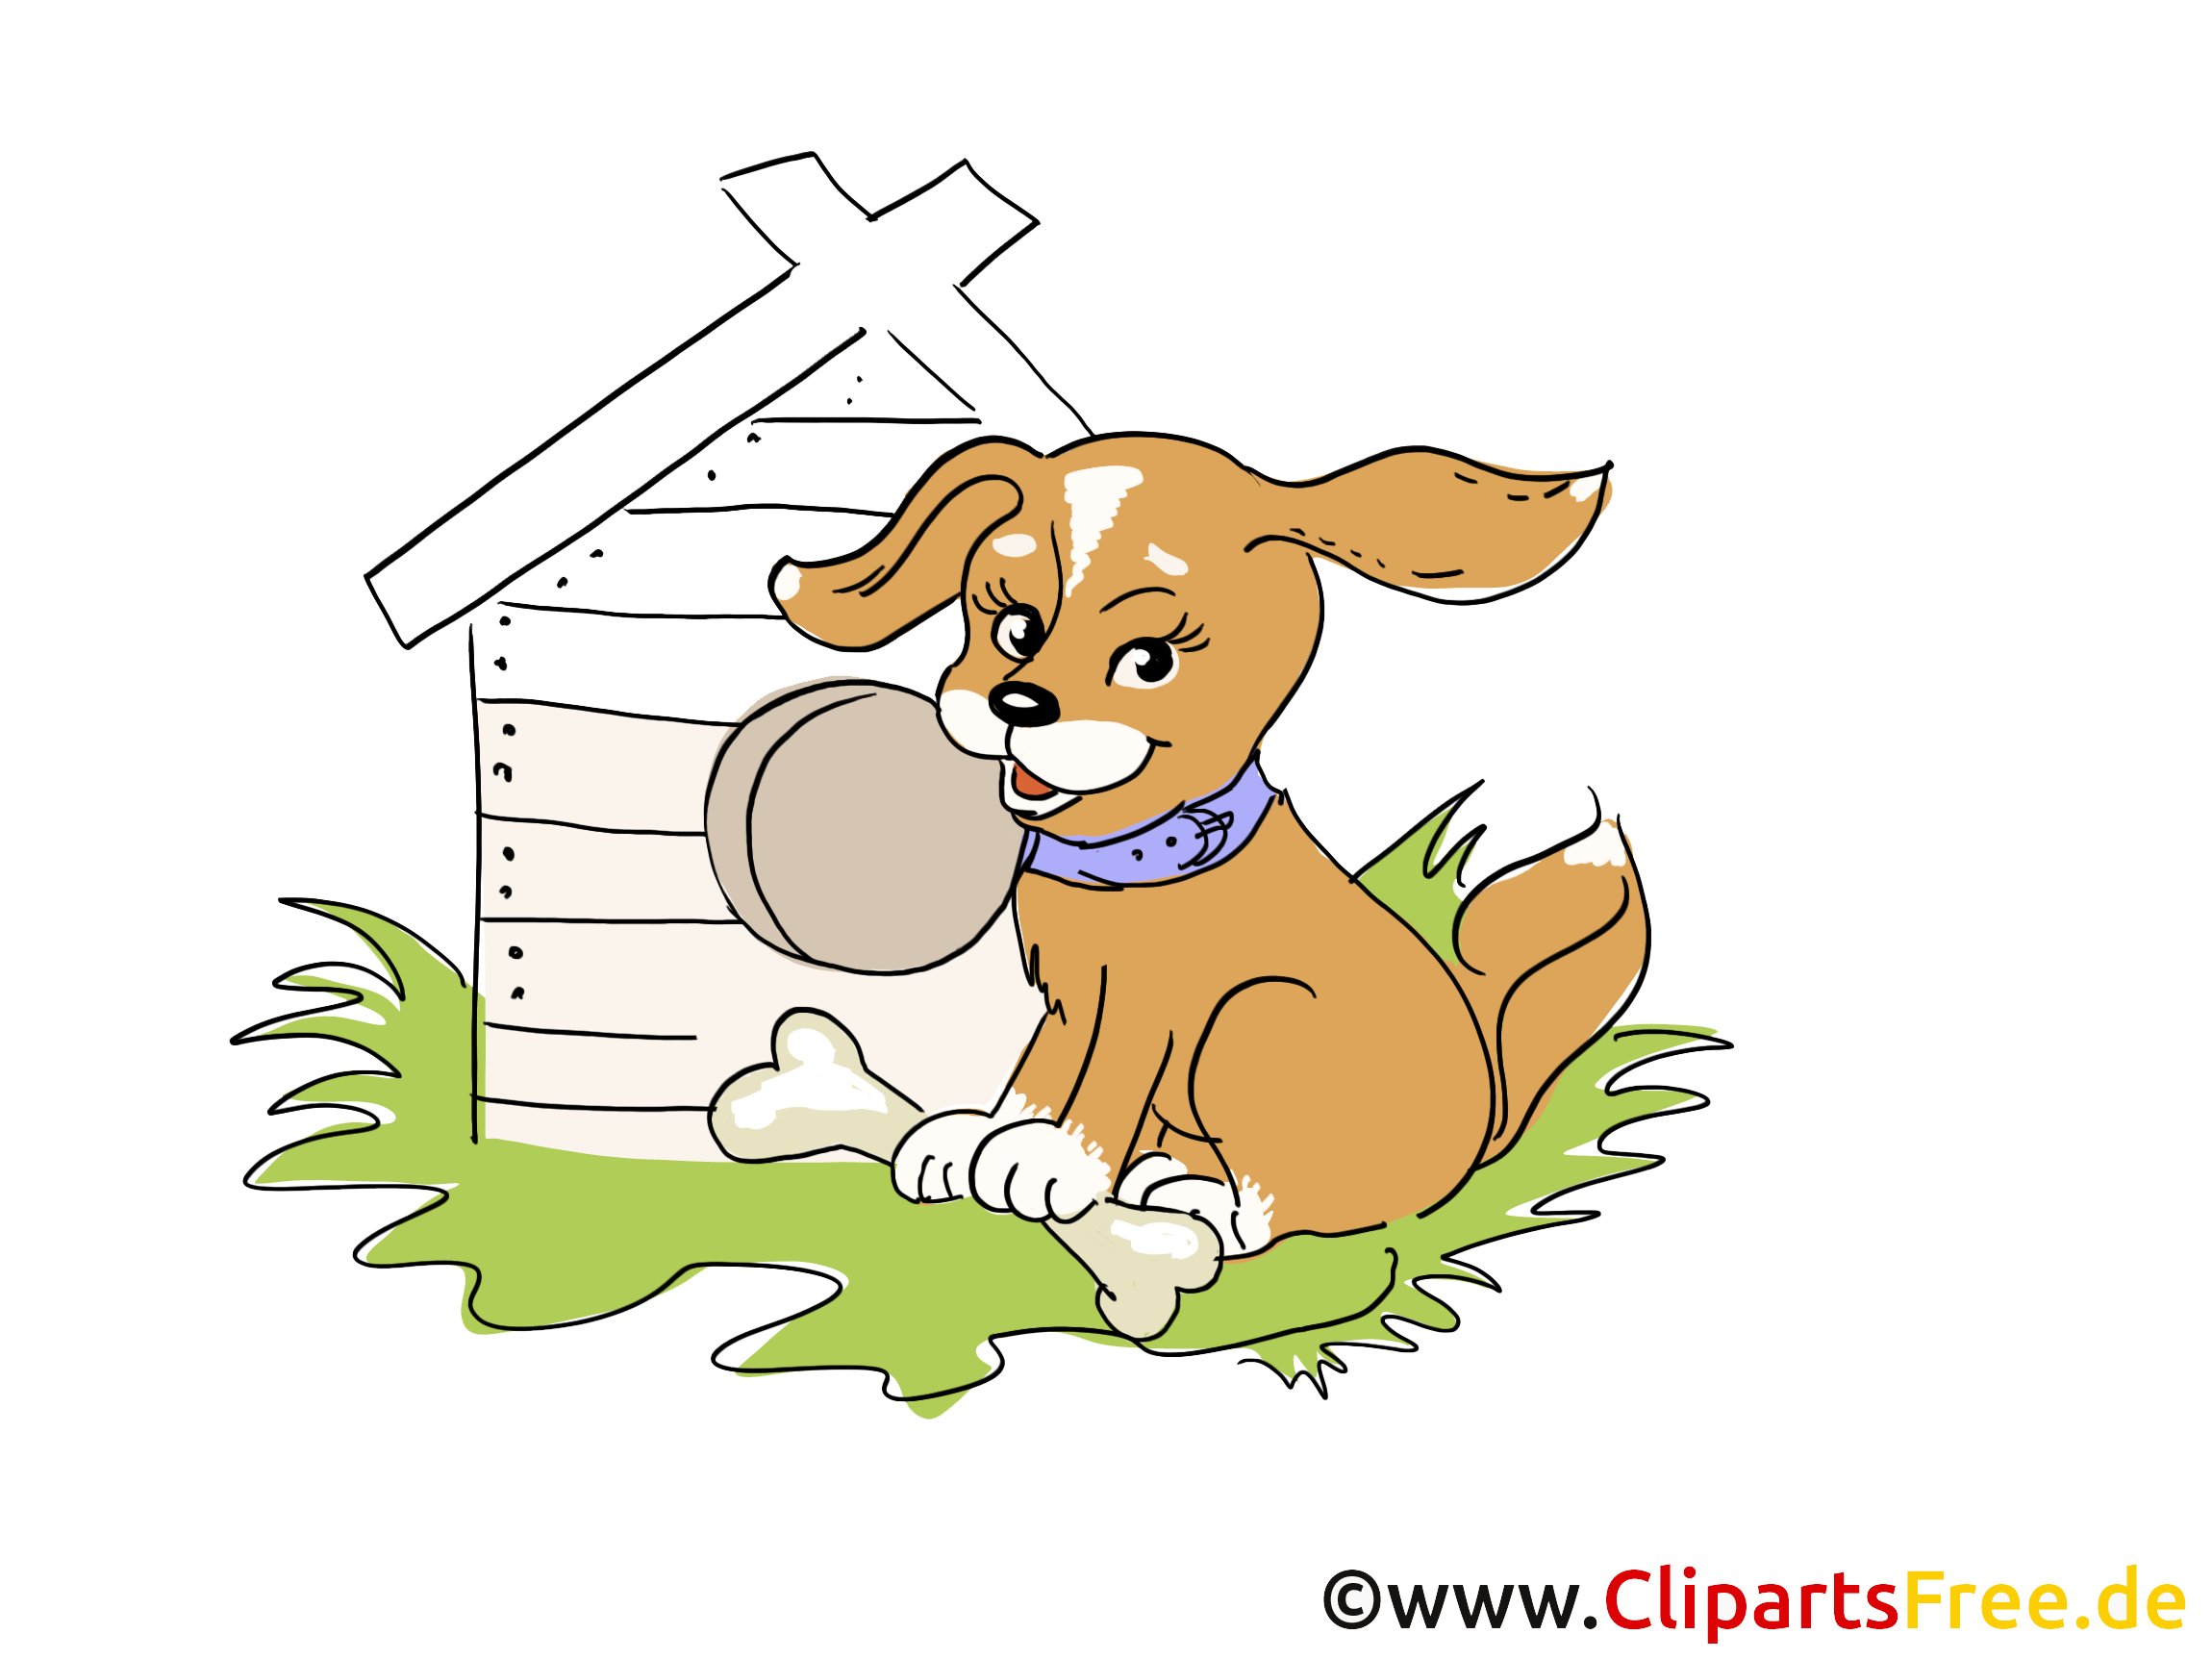 Wachhund Clipart, Bild, Cartoon